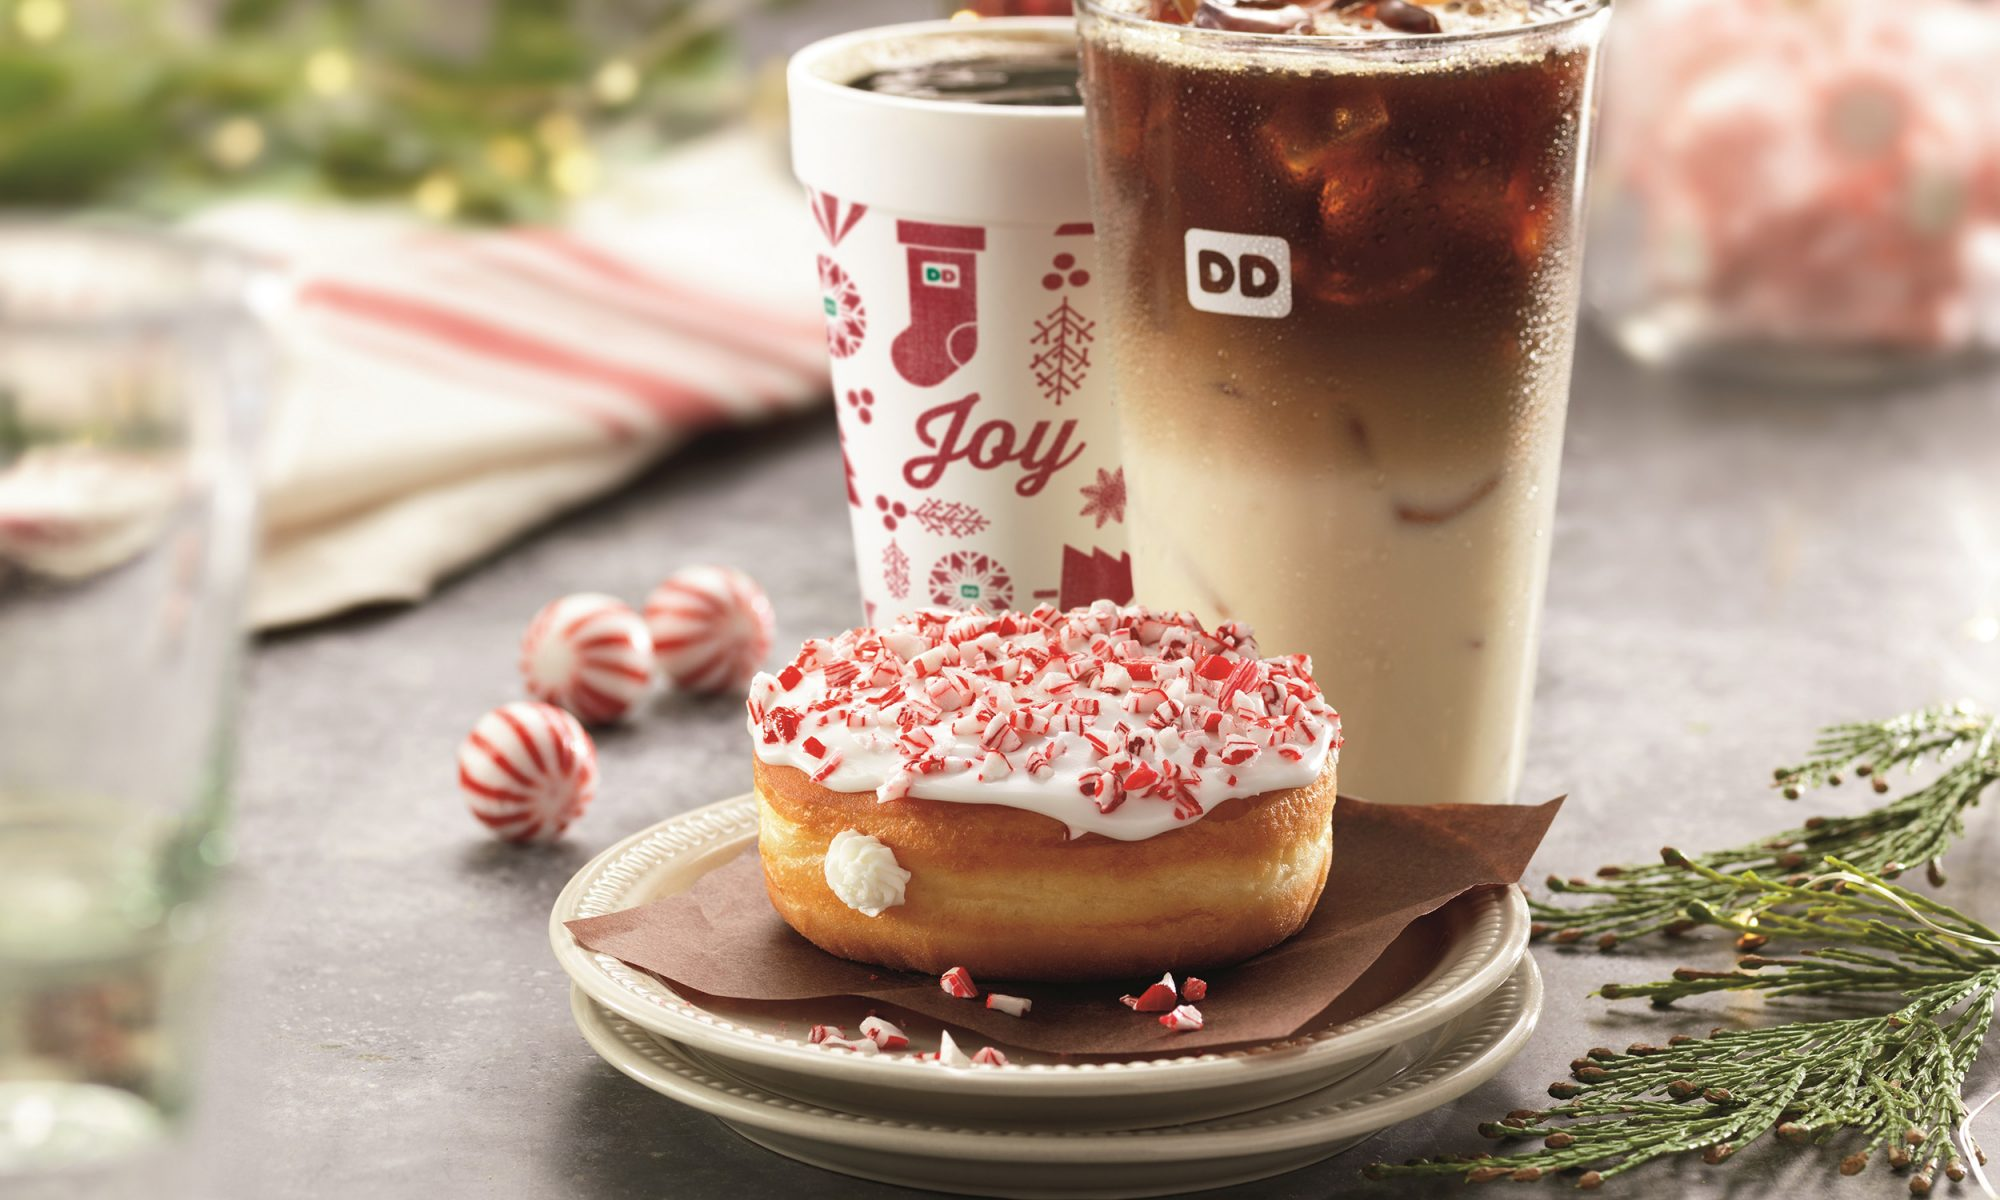 EC: Dunkin' Is So Ready for the Holidays with New Christmas Doughnuts and Drinks